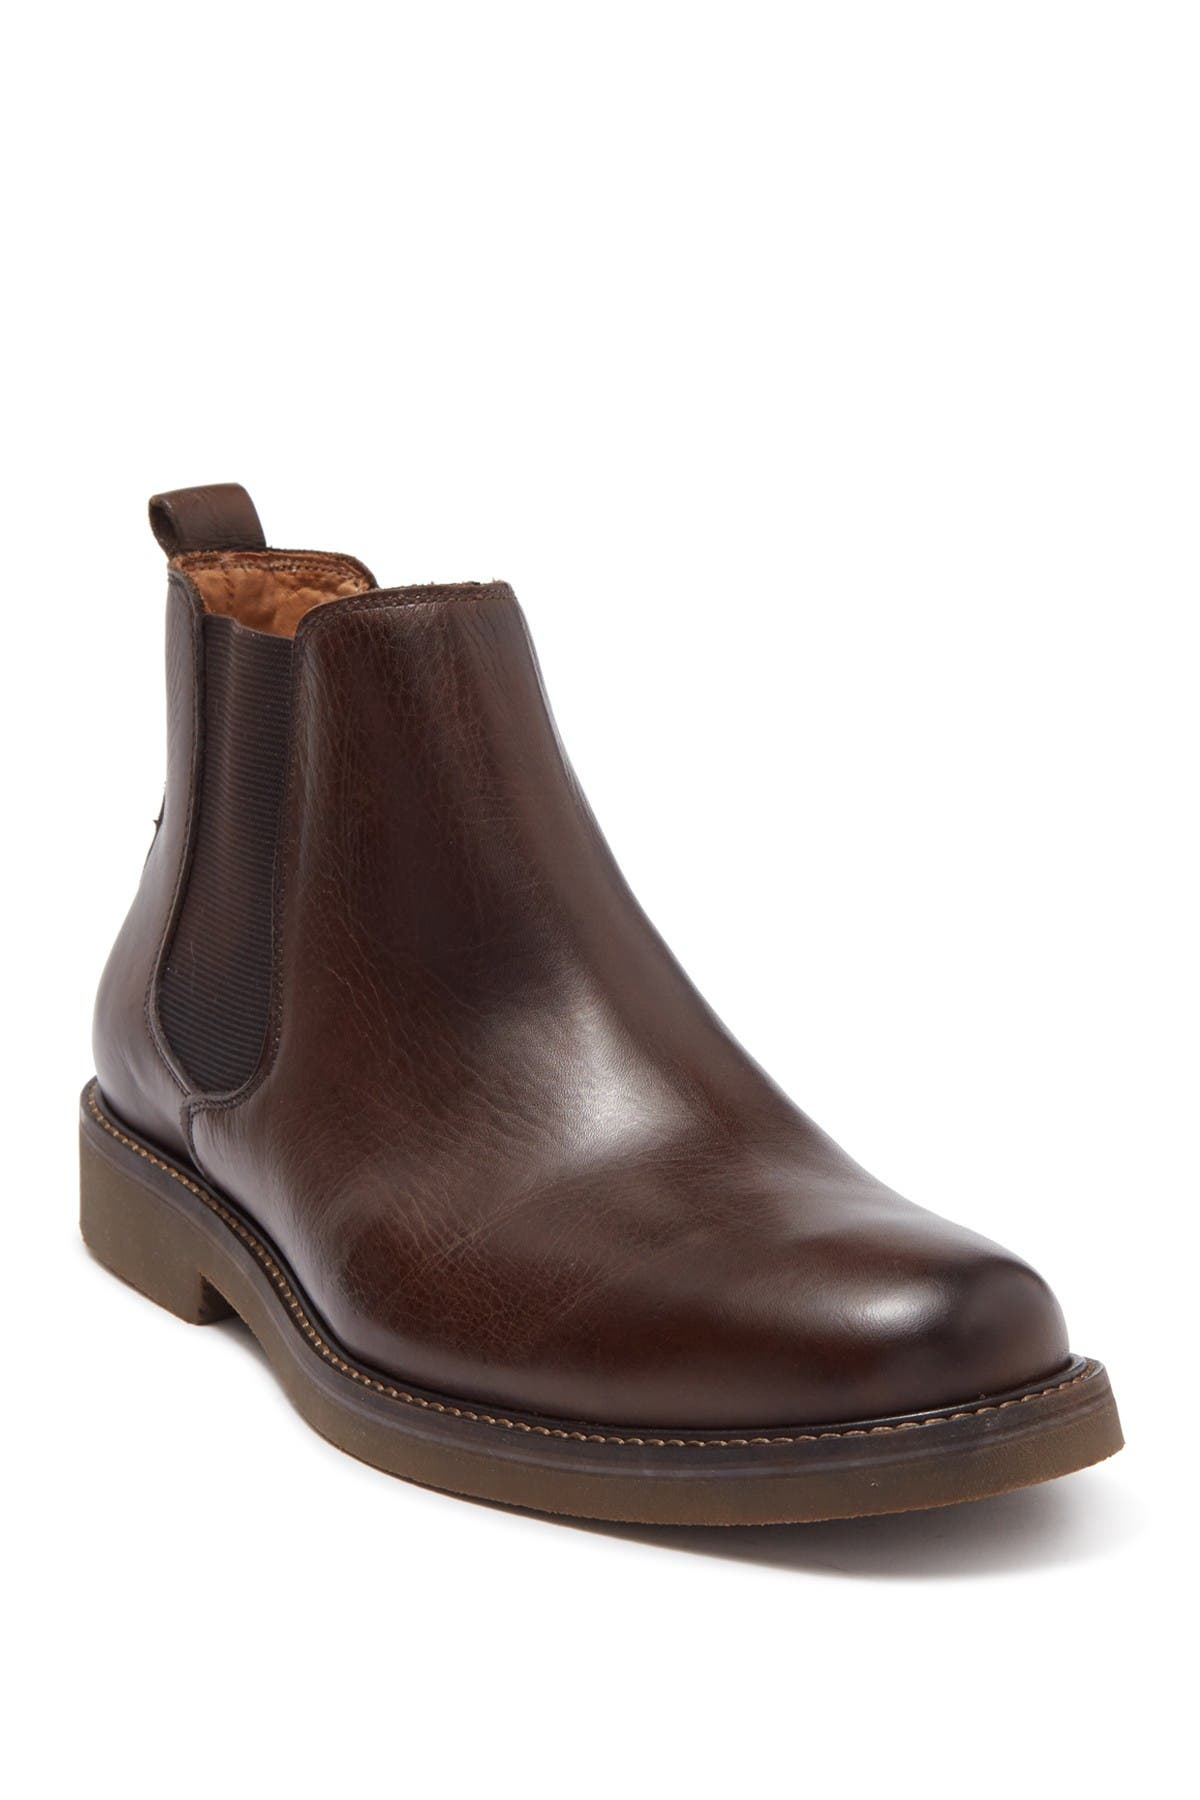 Image of Marc Joseph New York Ande Chelsea Boot